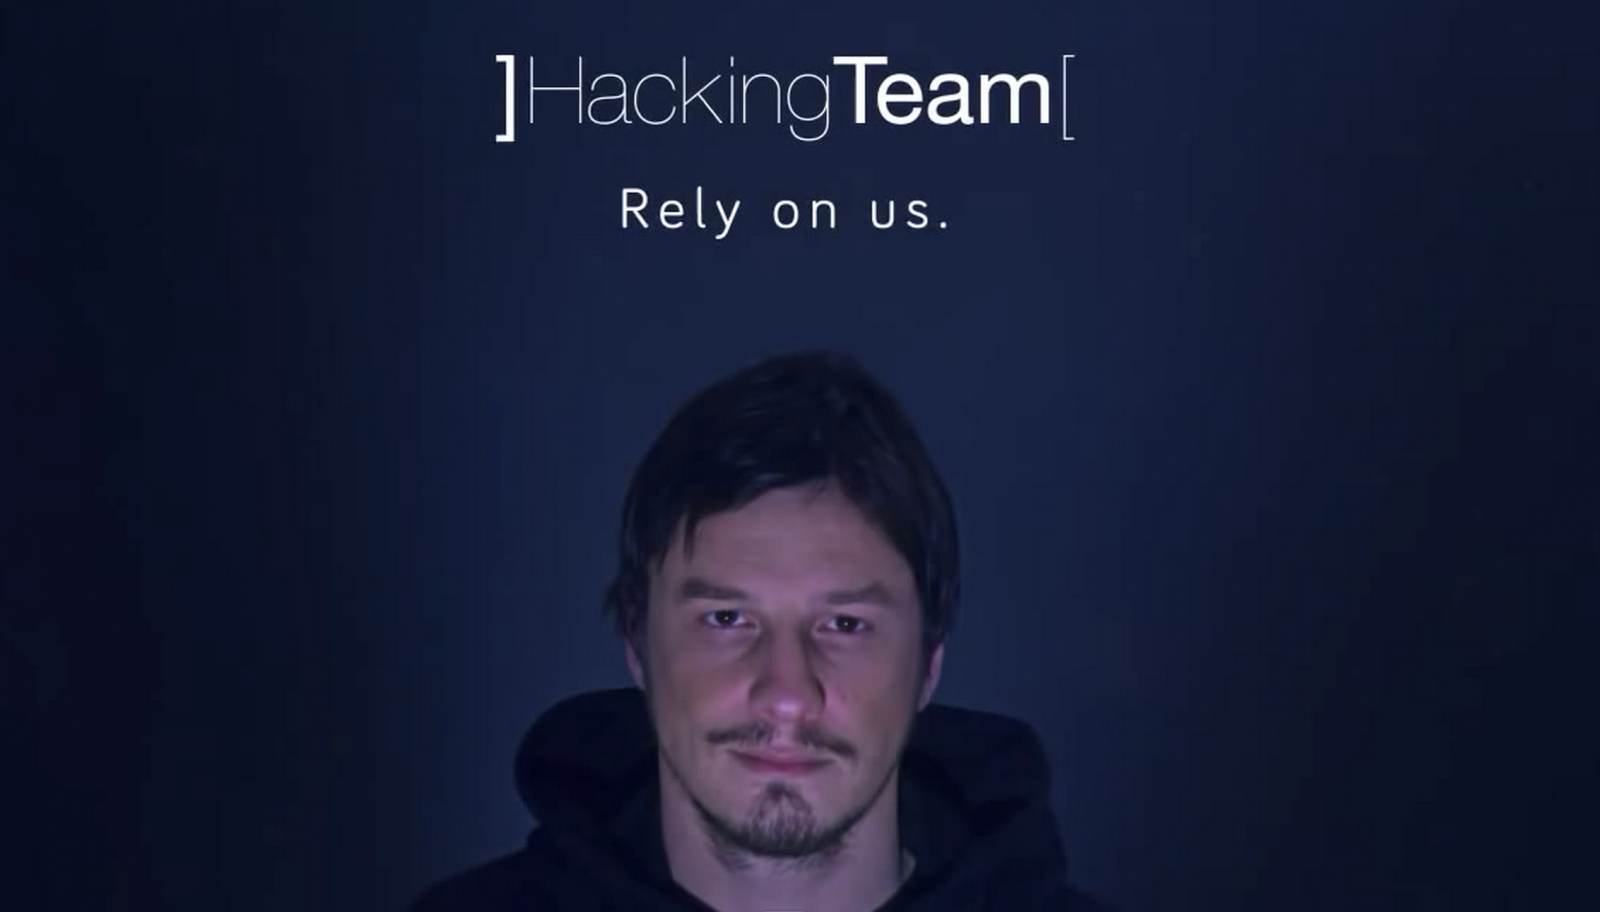 Hacking Team CEO David Vincenzetti